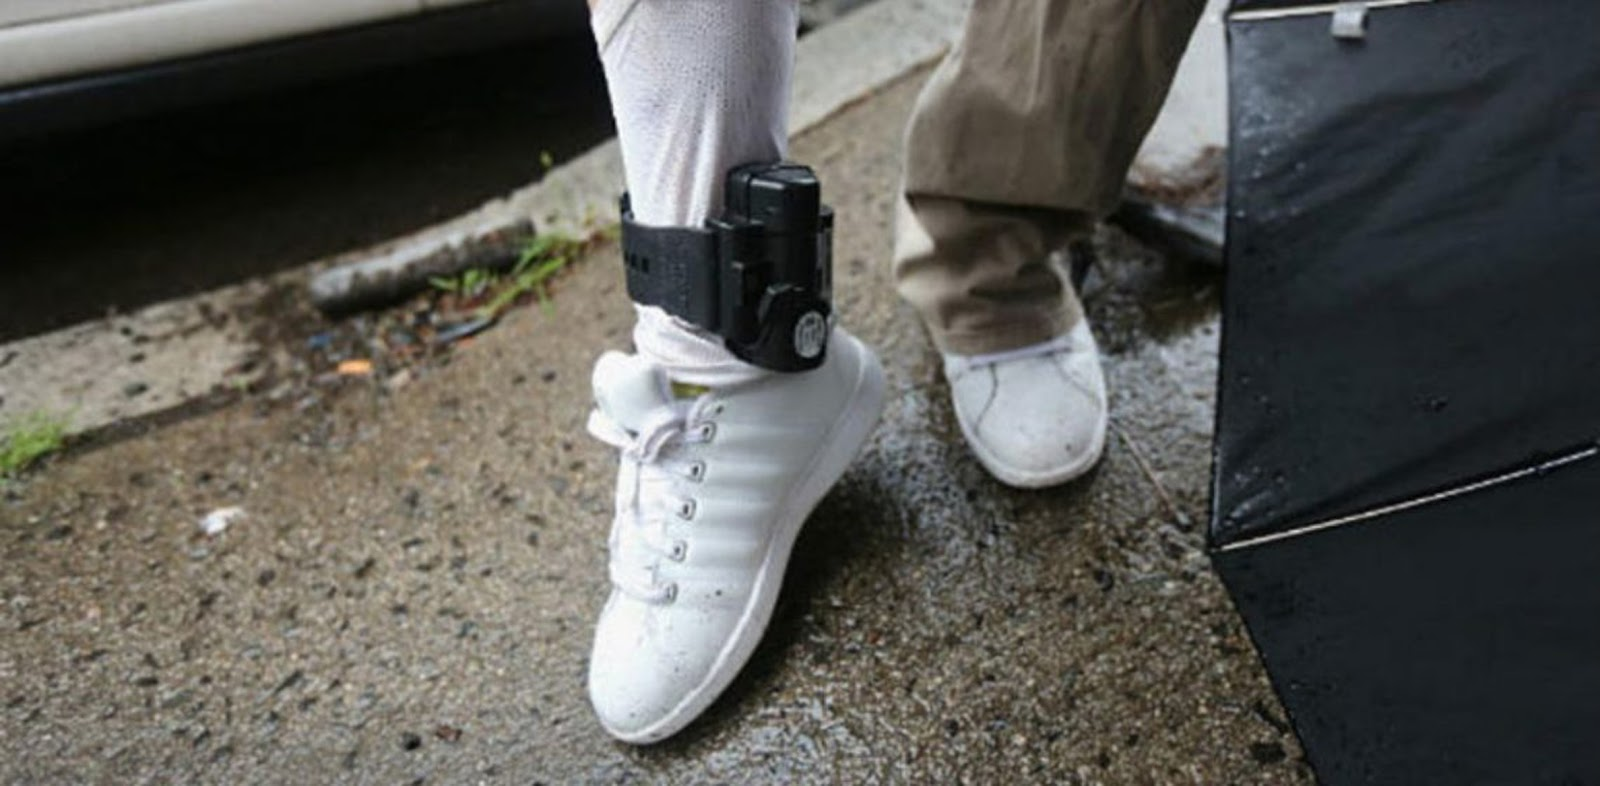 Coronavirus Patients Ordered to Wear GPS Ankle Monitors